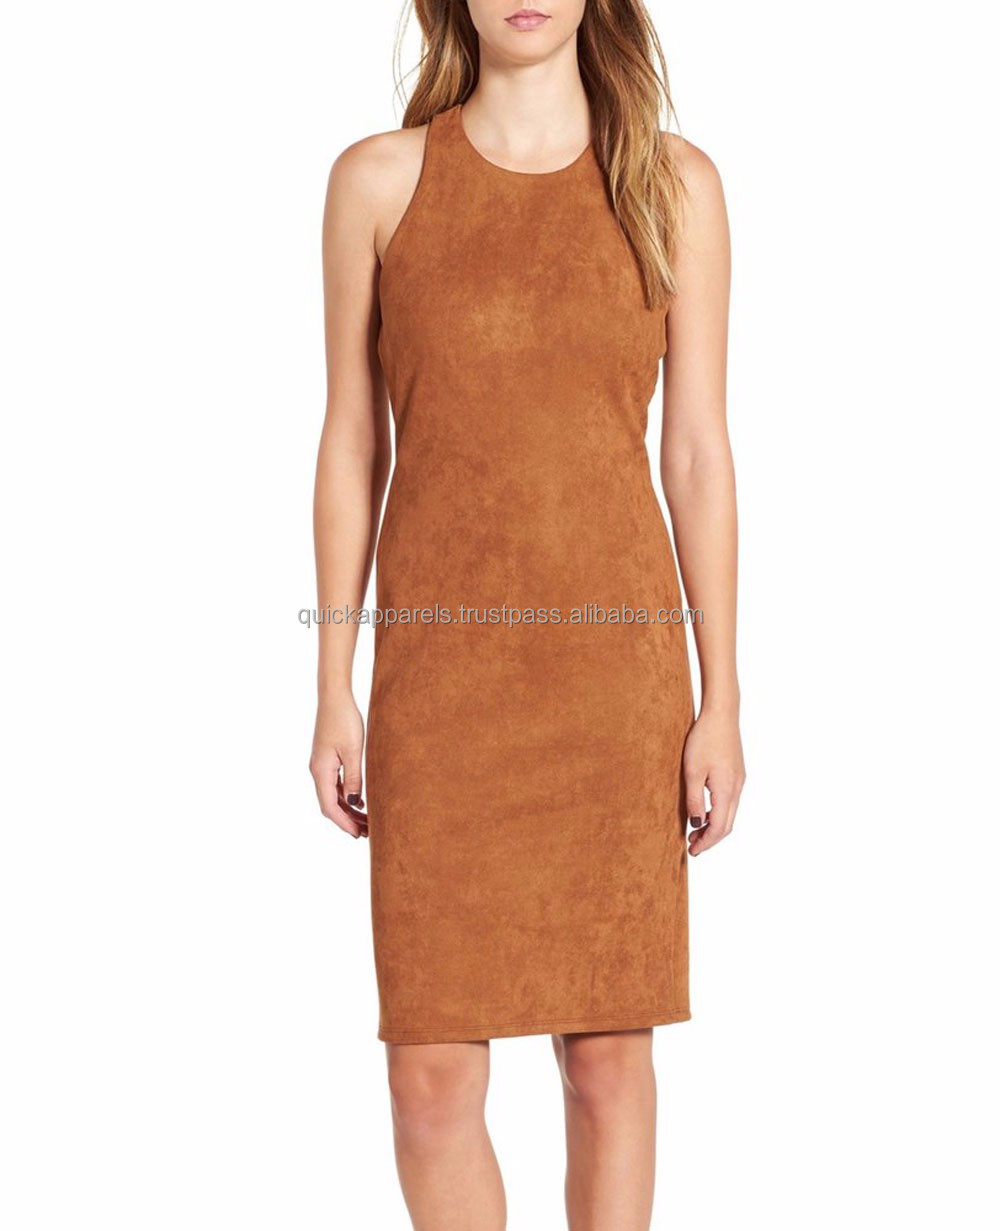 China factory clothing wholesale latest design high end sleeveless women casual leather dress